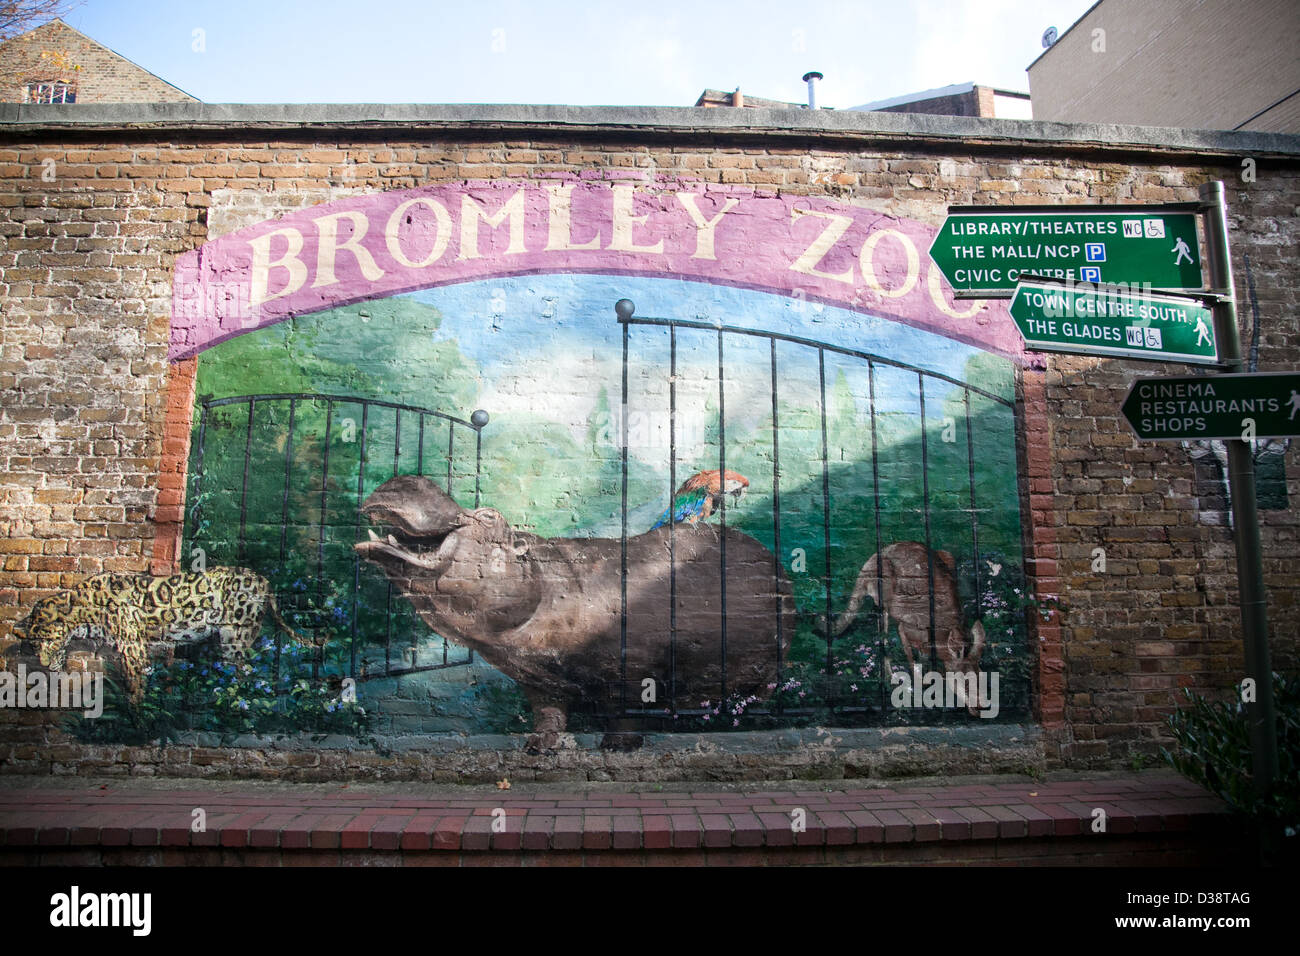 Bromley Zoo wall mural in Kent UK - Stock Image